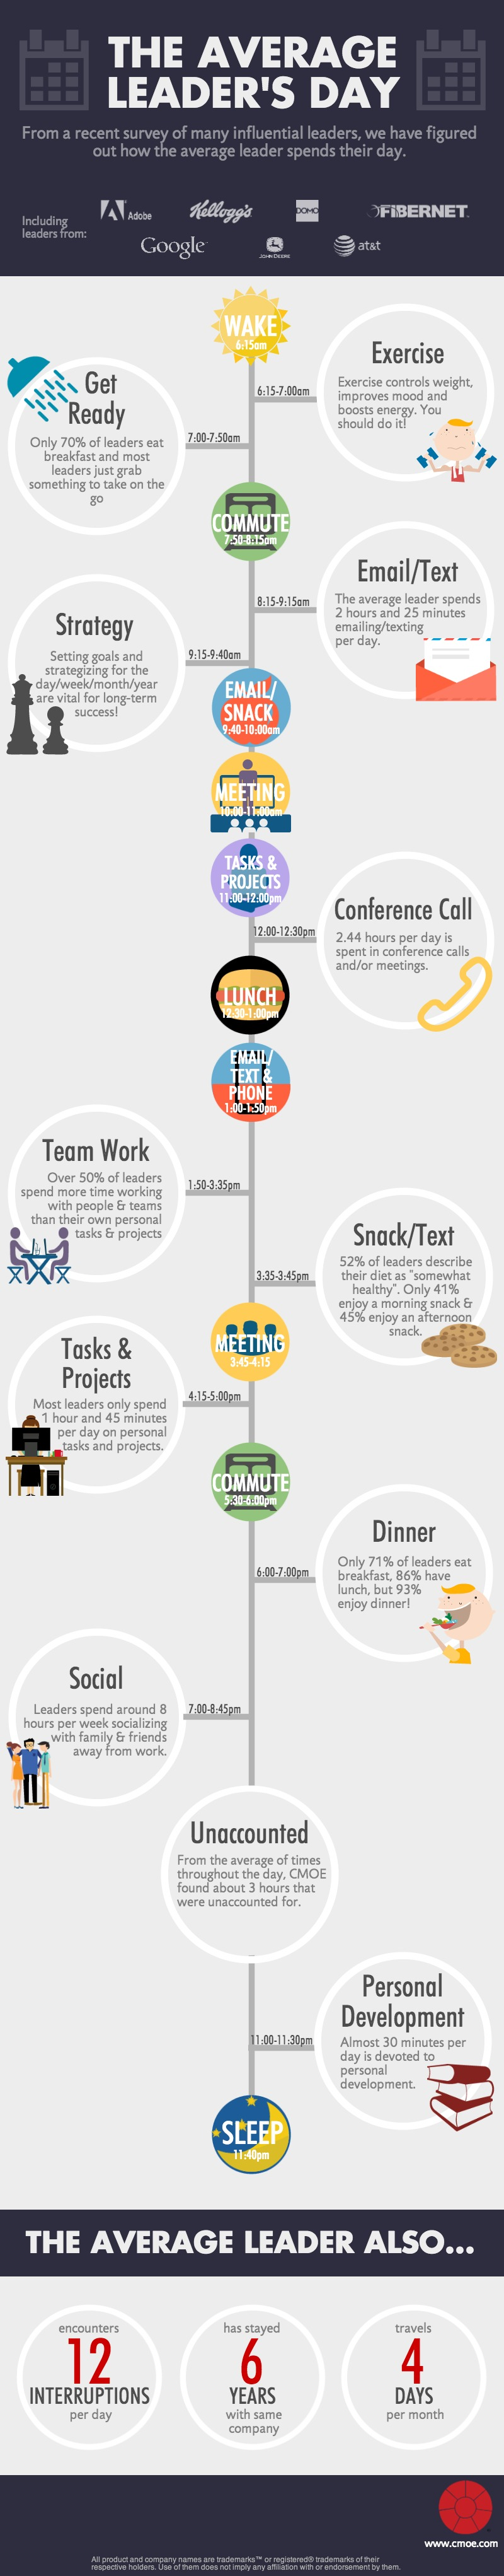 How Leaders Spend Their Time